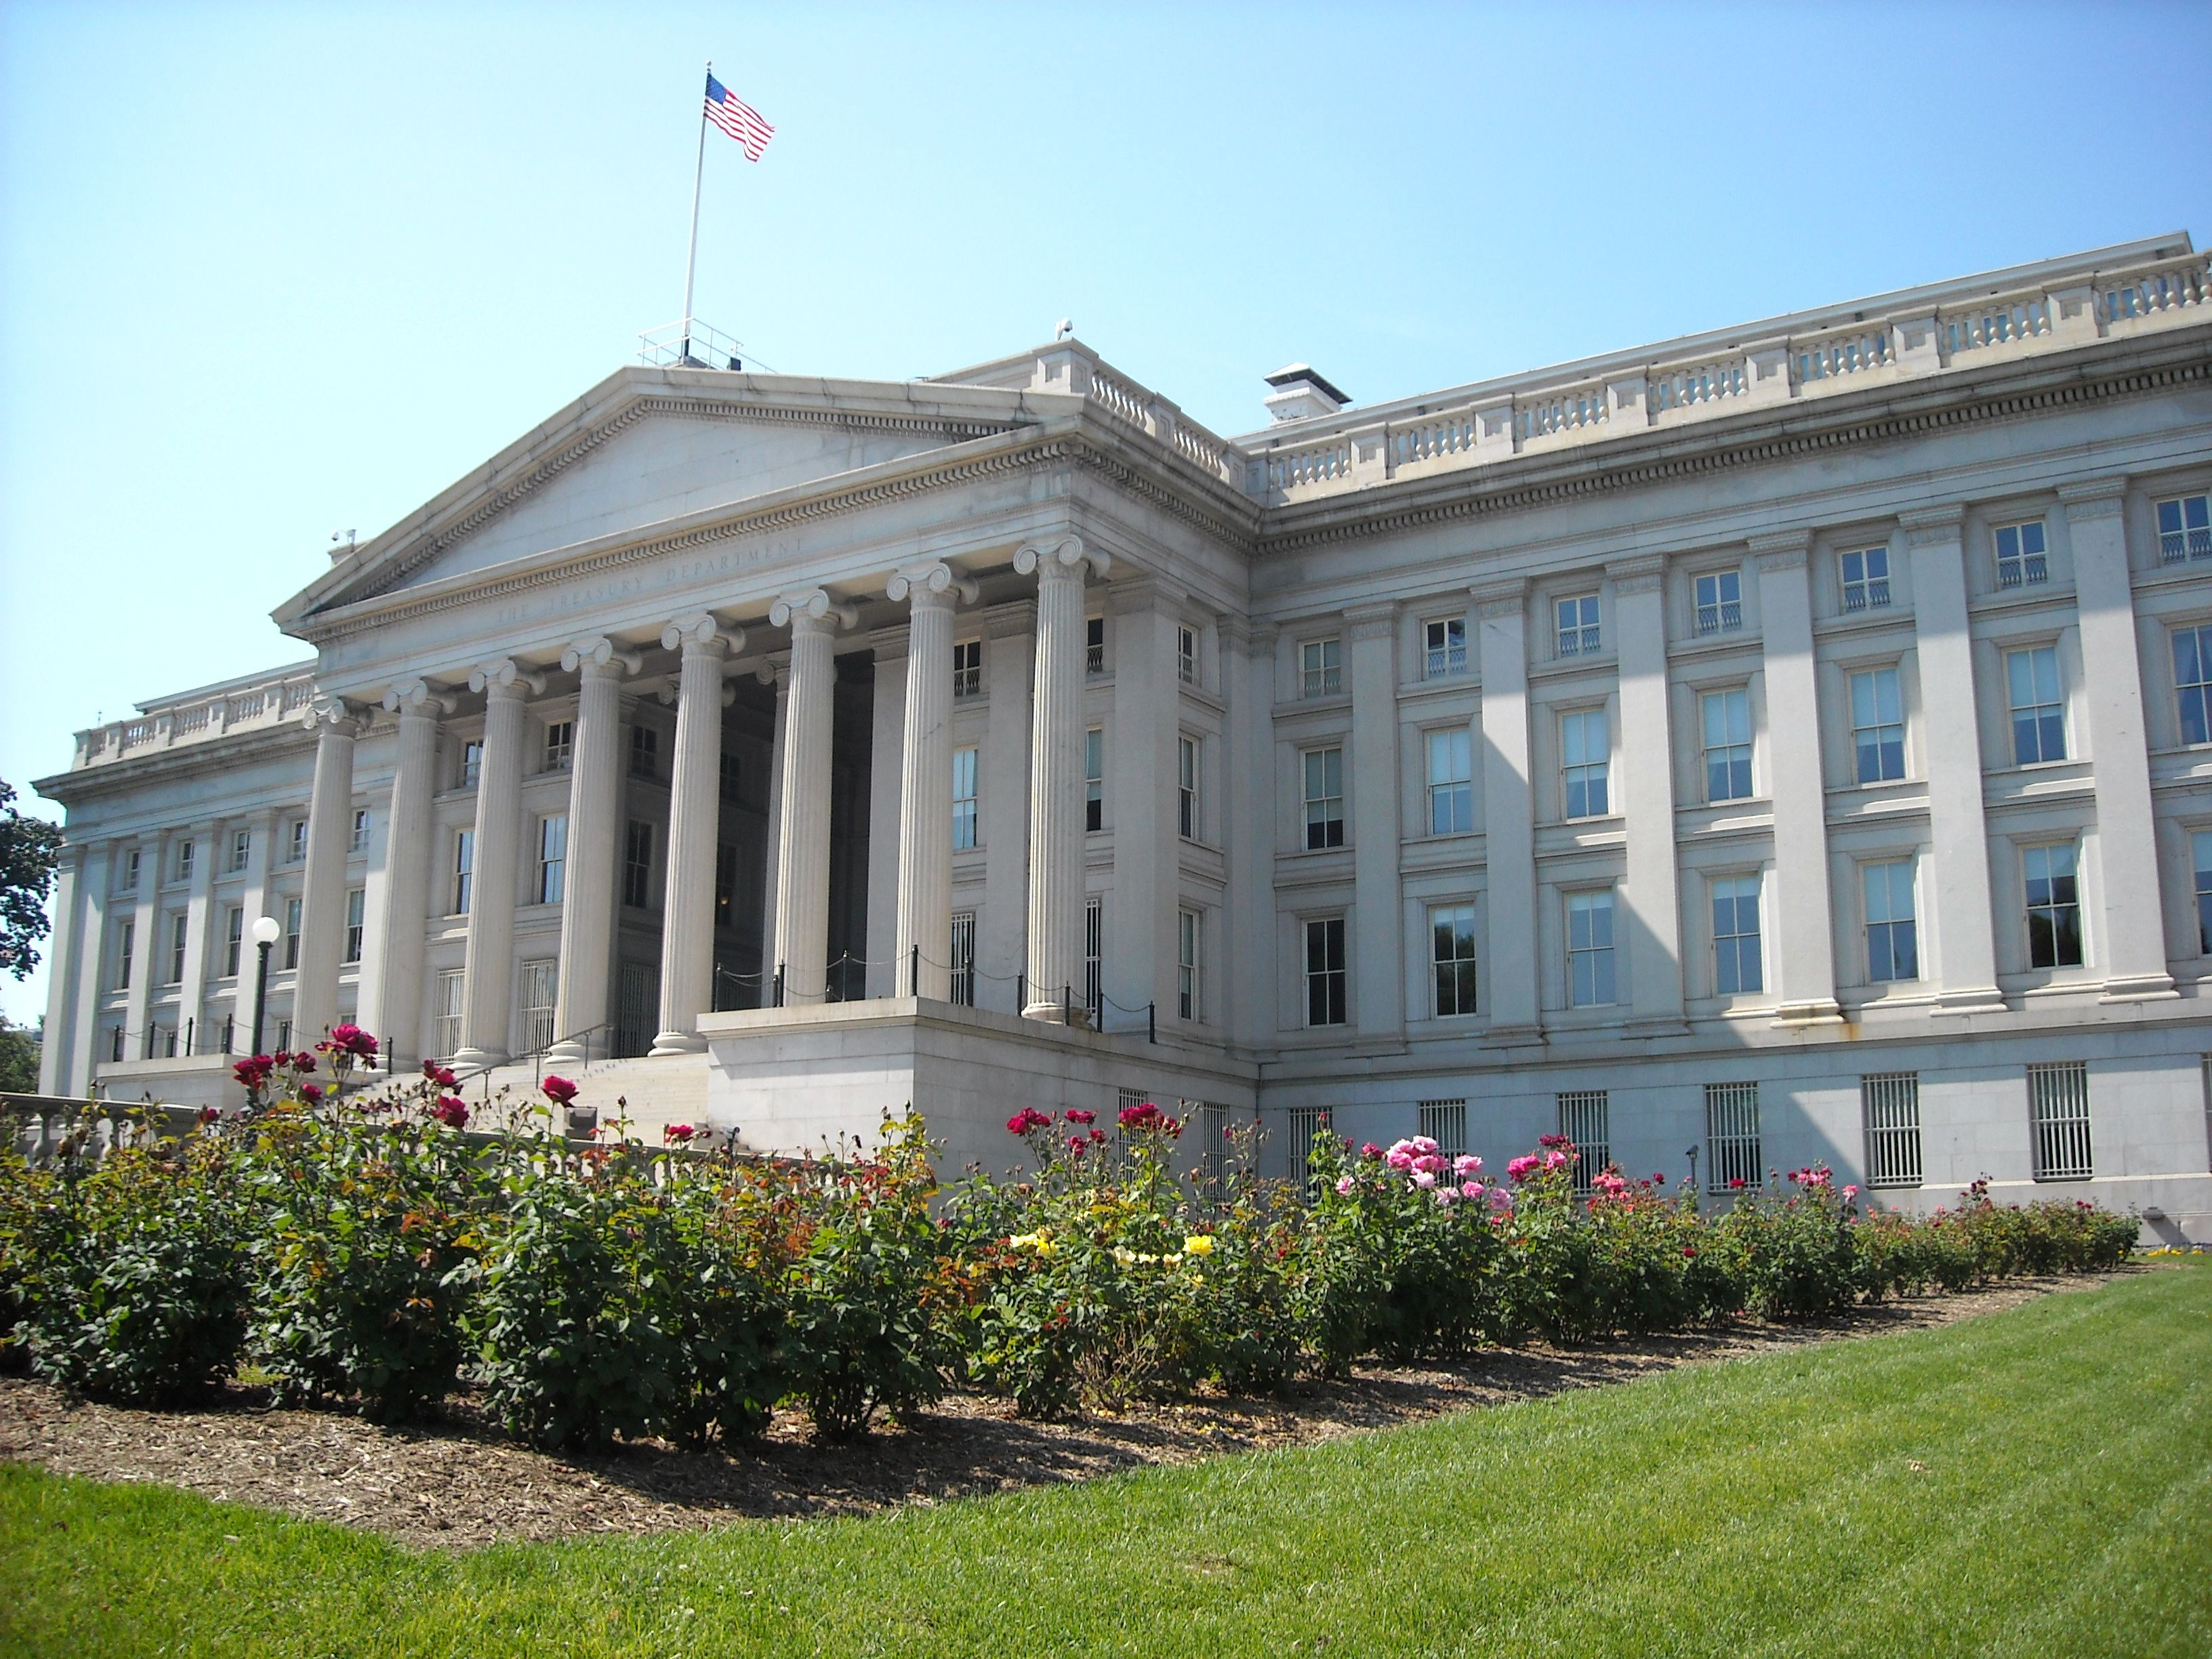 Treasury_Department - credit- wiki commons